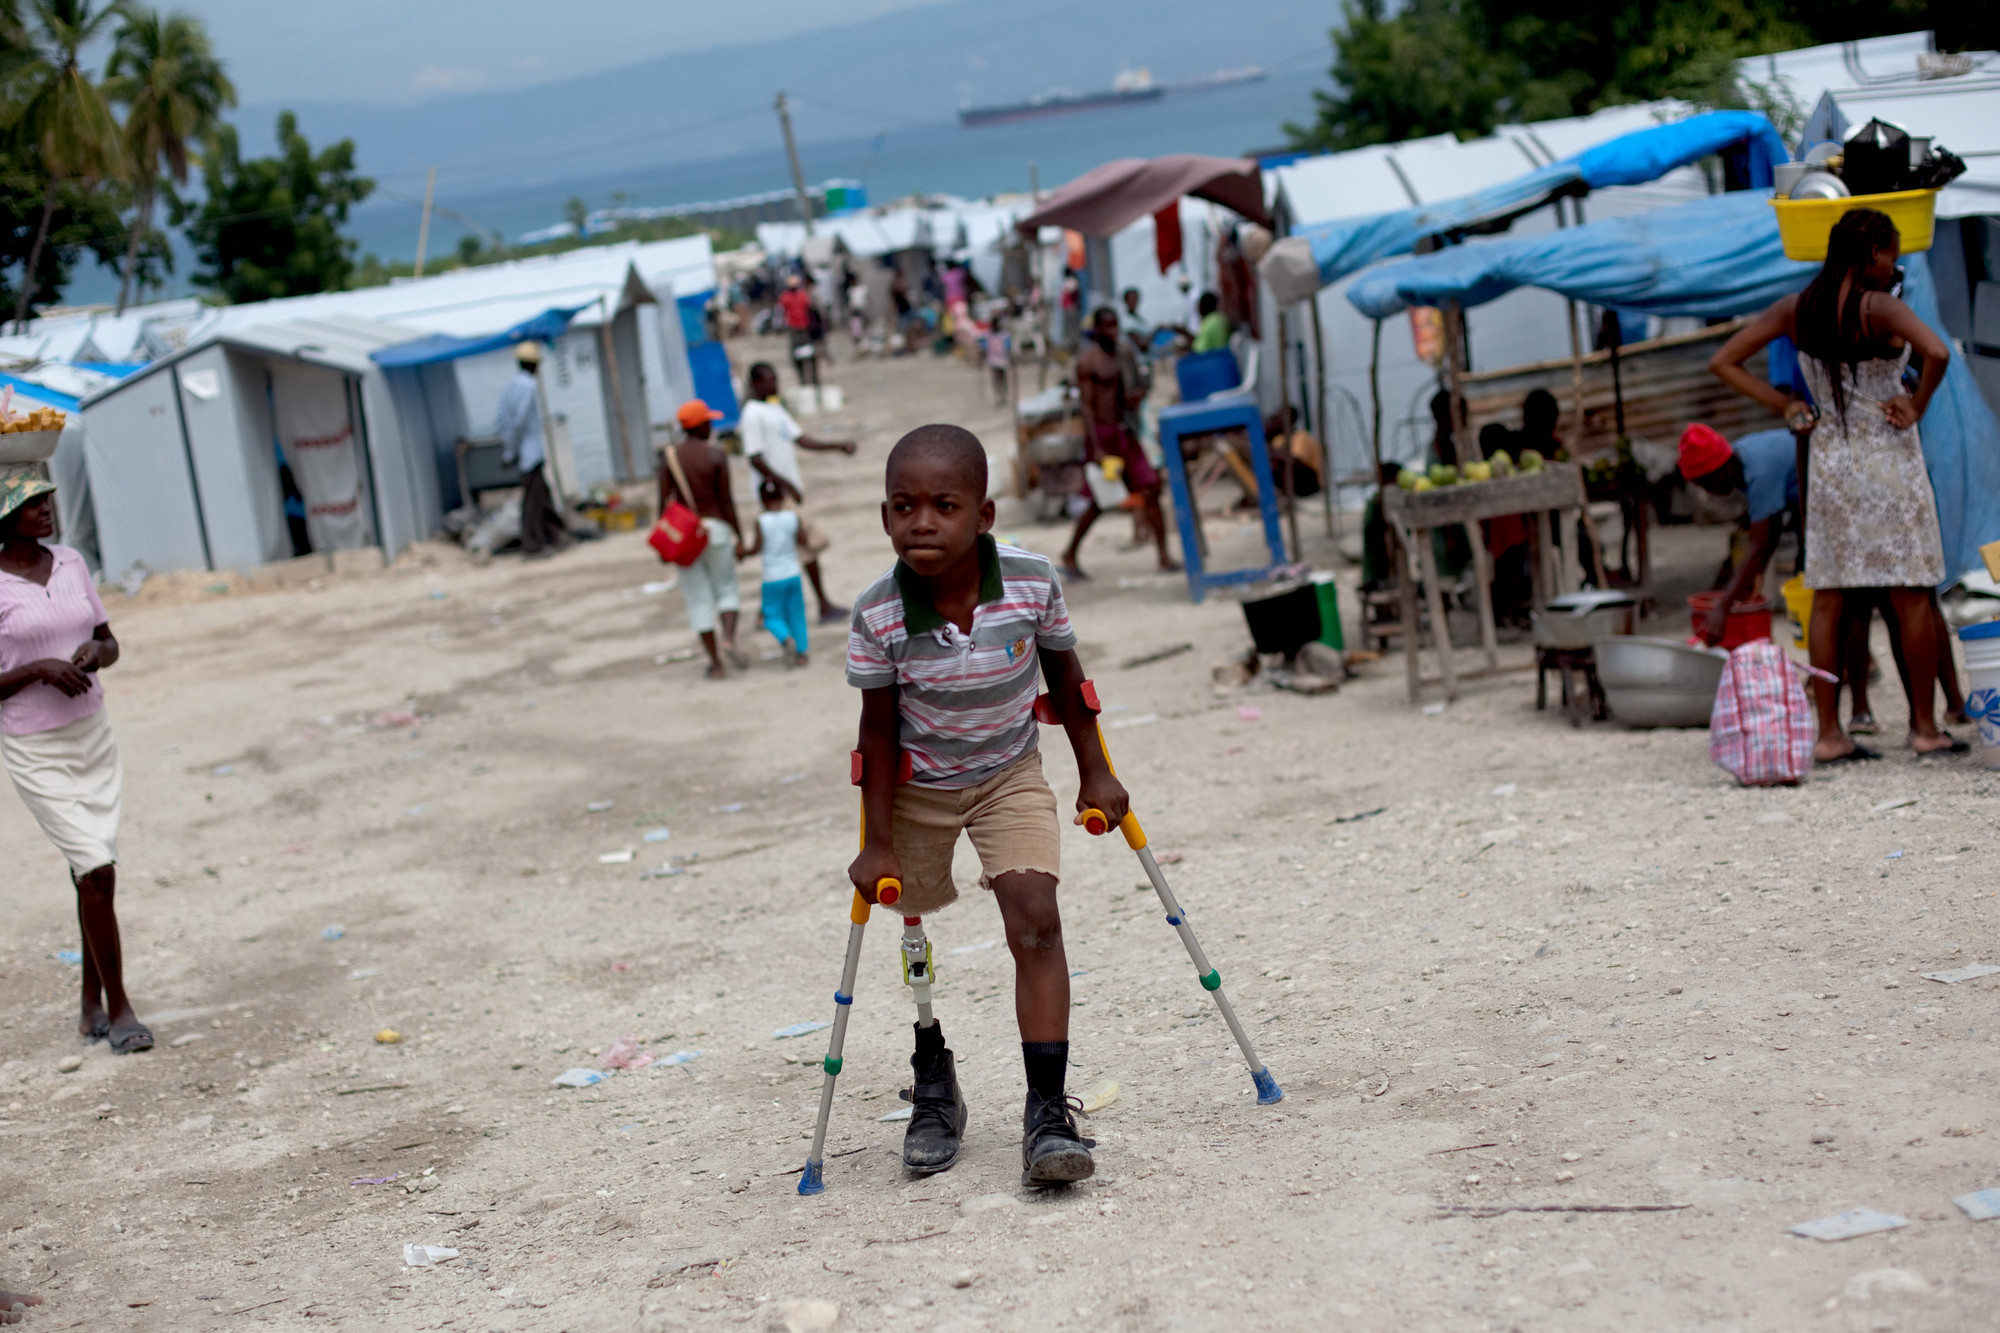 A boy walks with a prosthetic leg and crutches